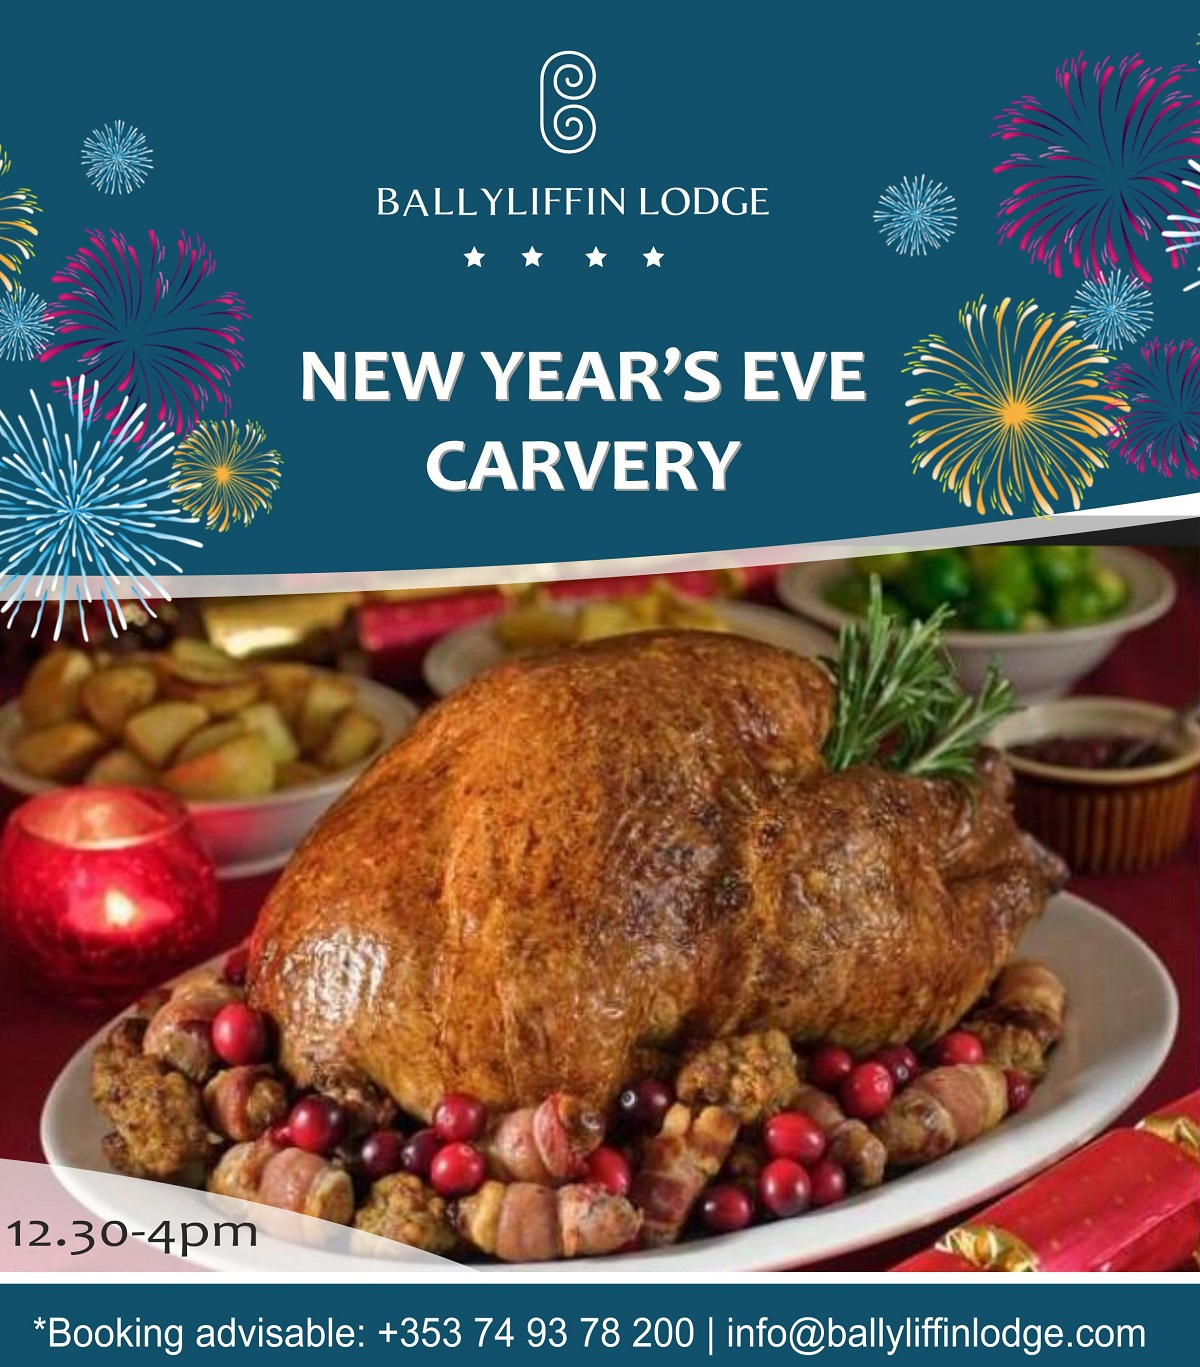 NewYearCarvery